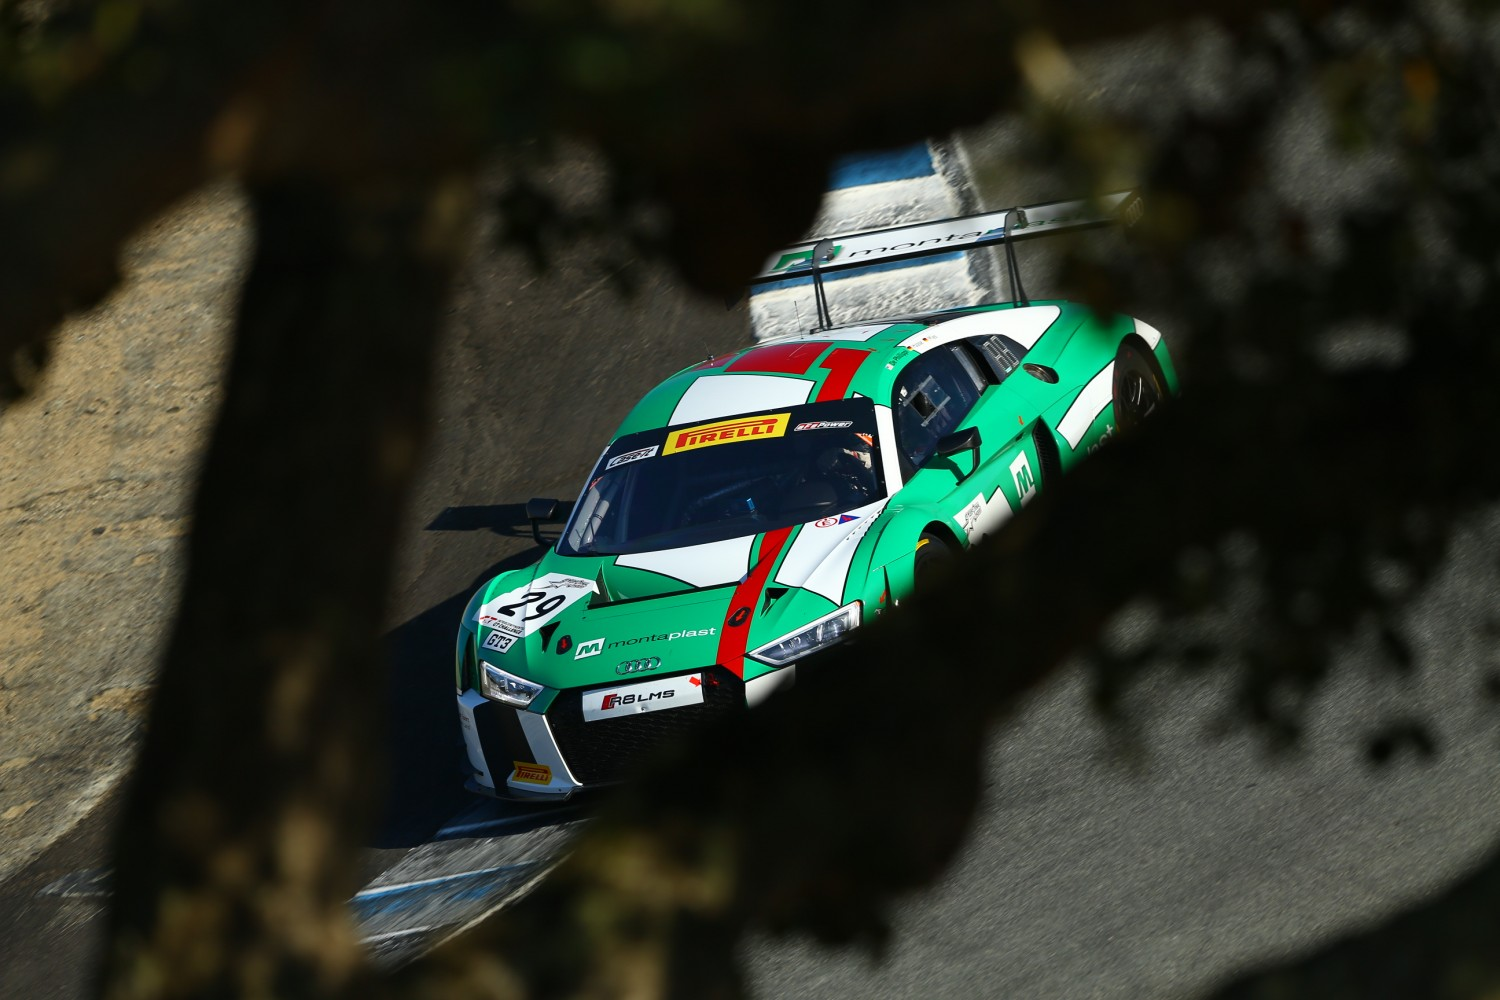 Audi Sport Team Land tops free practice